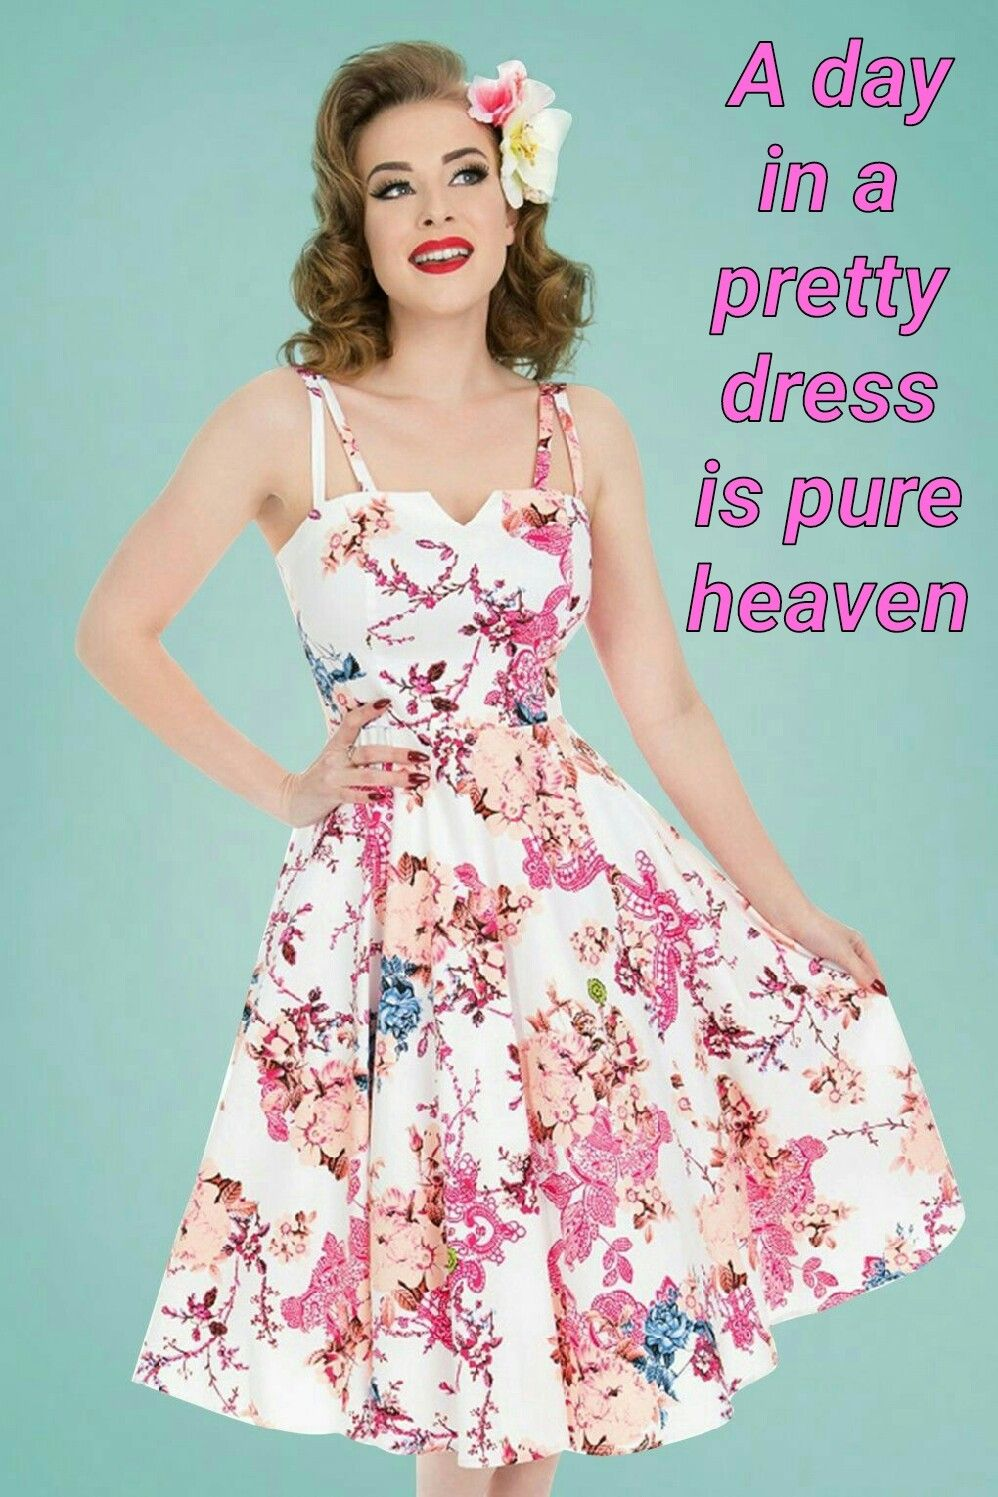 7234fd79ee6b LouiseLonging Hearts And Roses, 50s Dresses, Pretty Dresses, Floral Dresses,  Swing Skirt